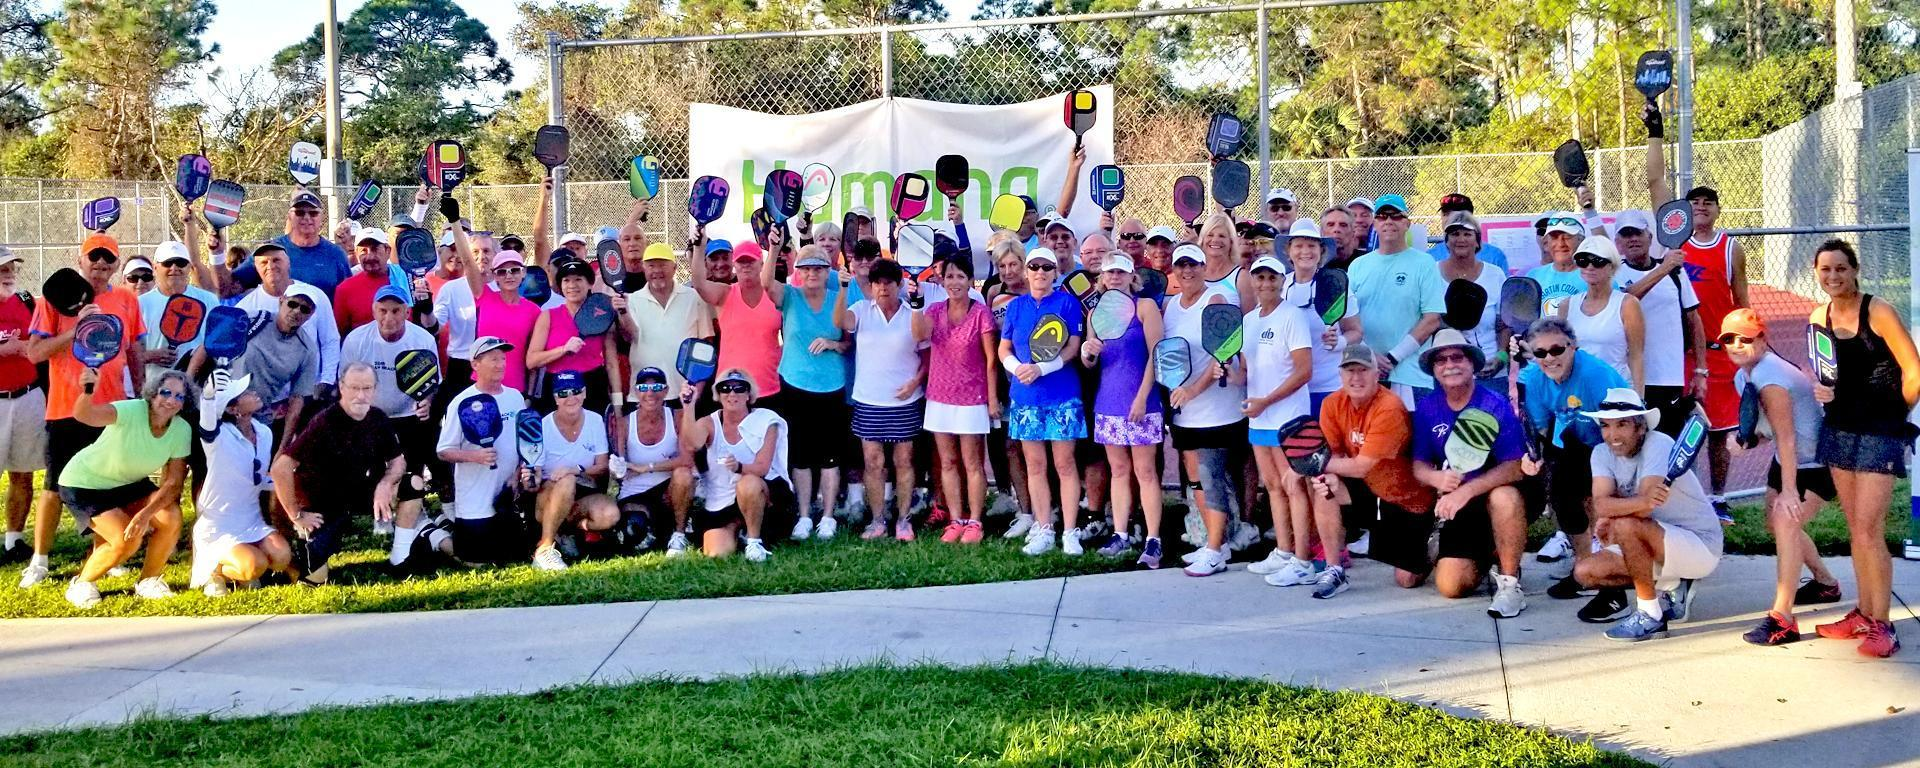 a group of senior games participants holding pickleball rackets